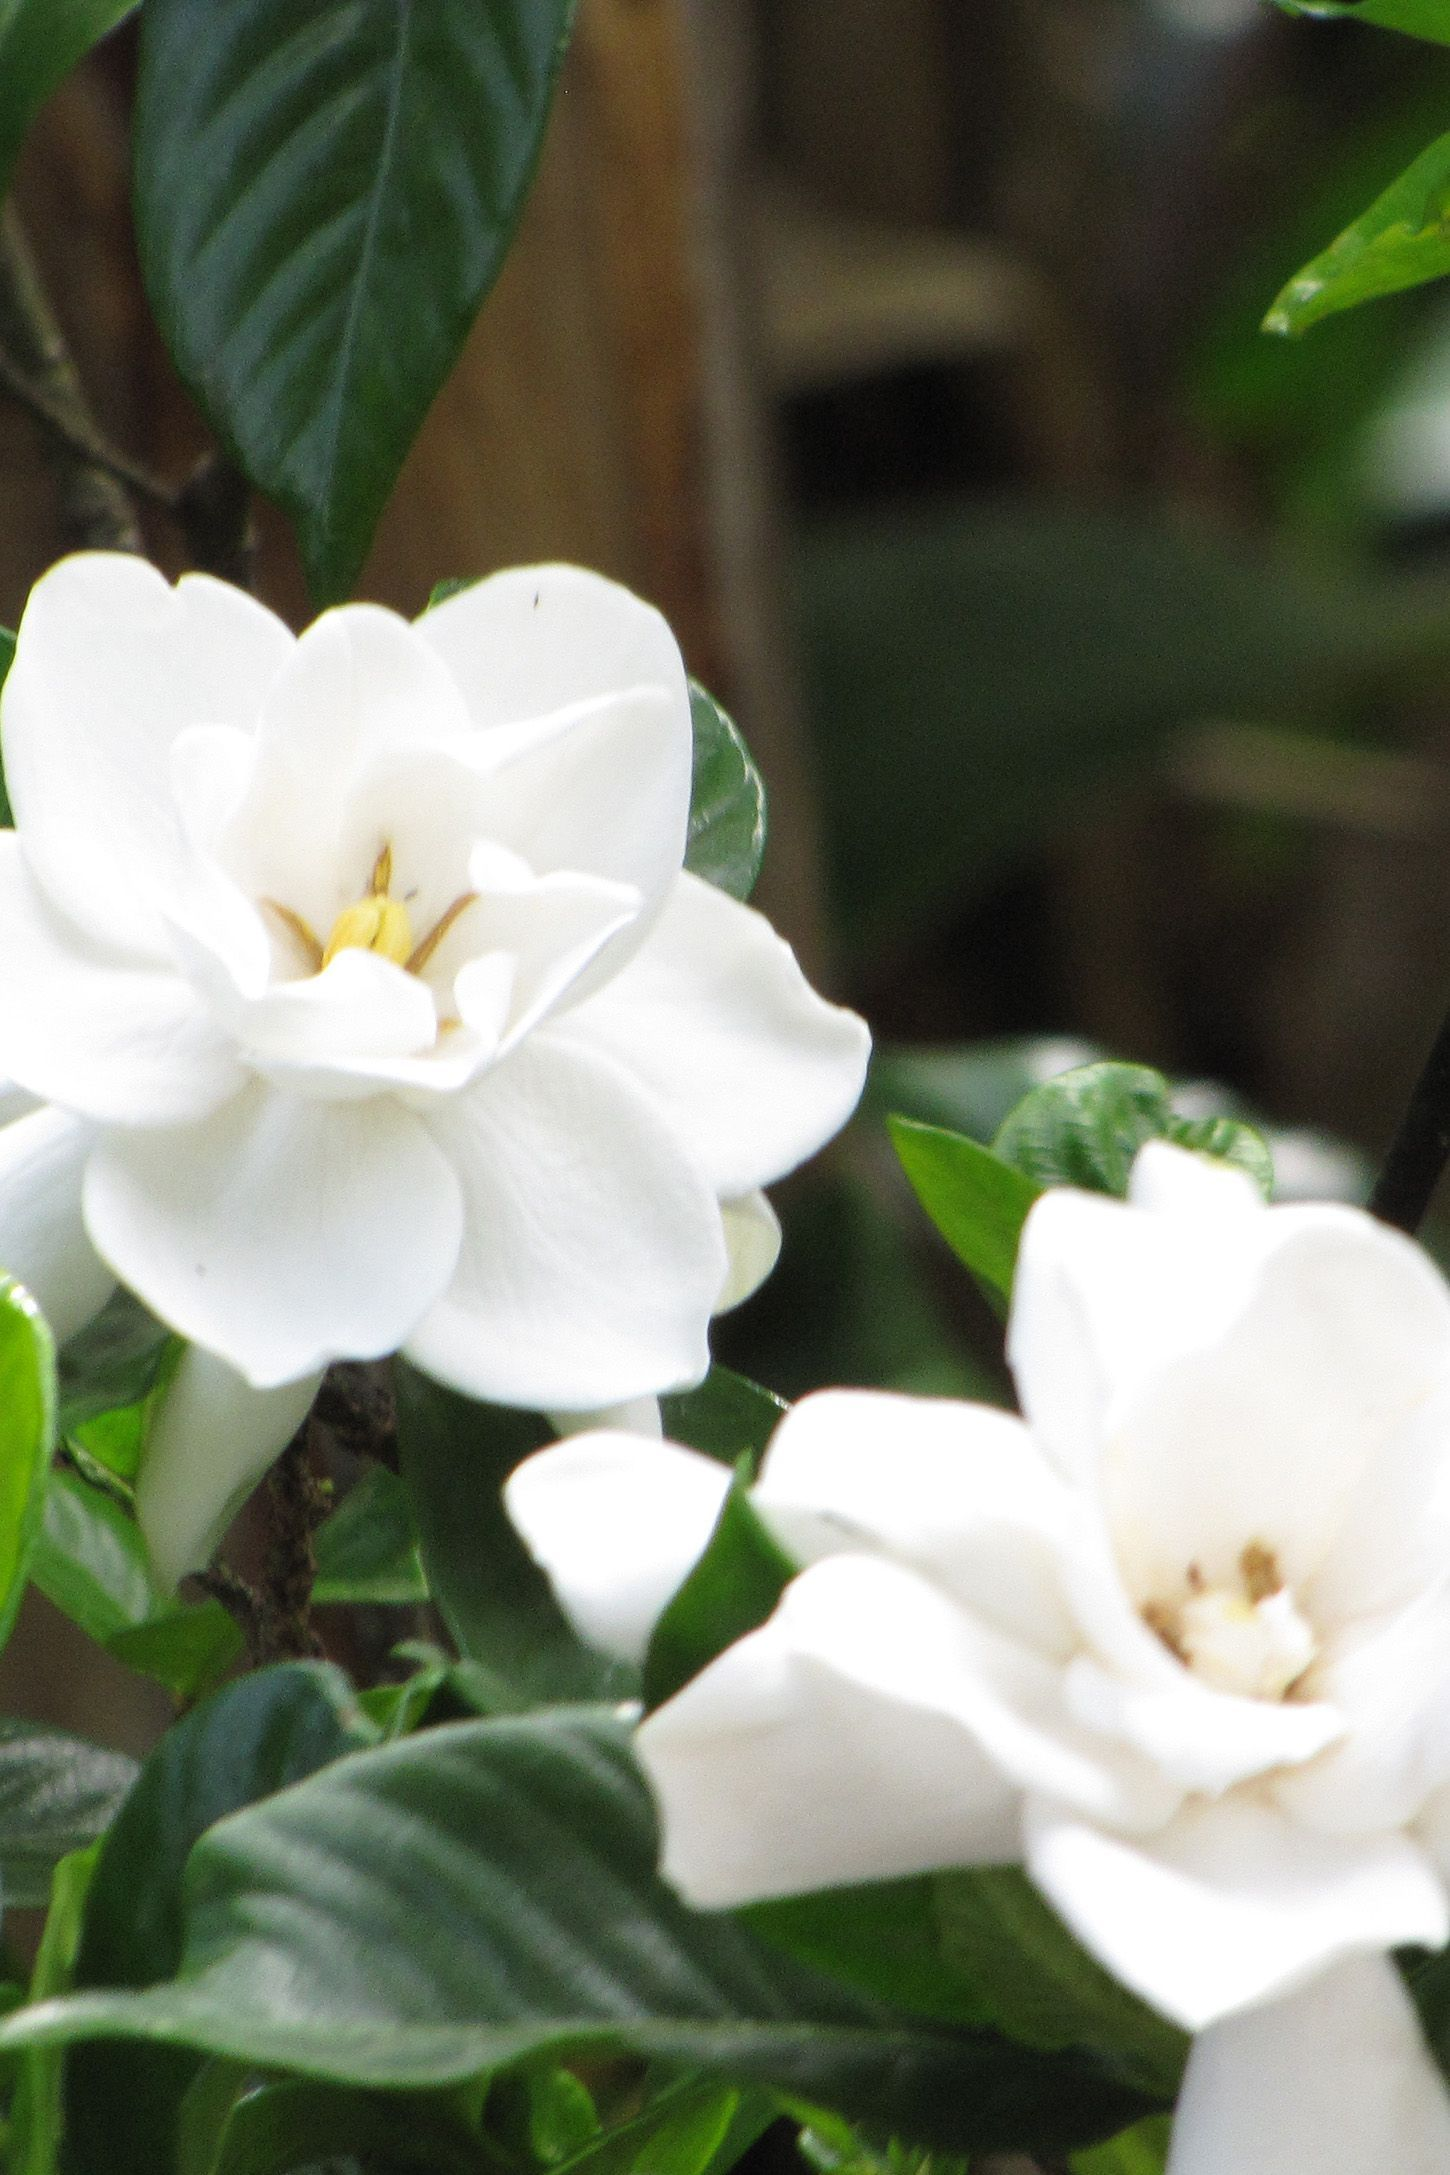 11 Fragrant Night Blooming Flowers That Will Make Your Evenings So